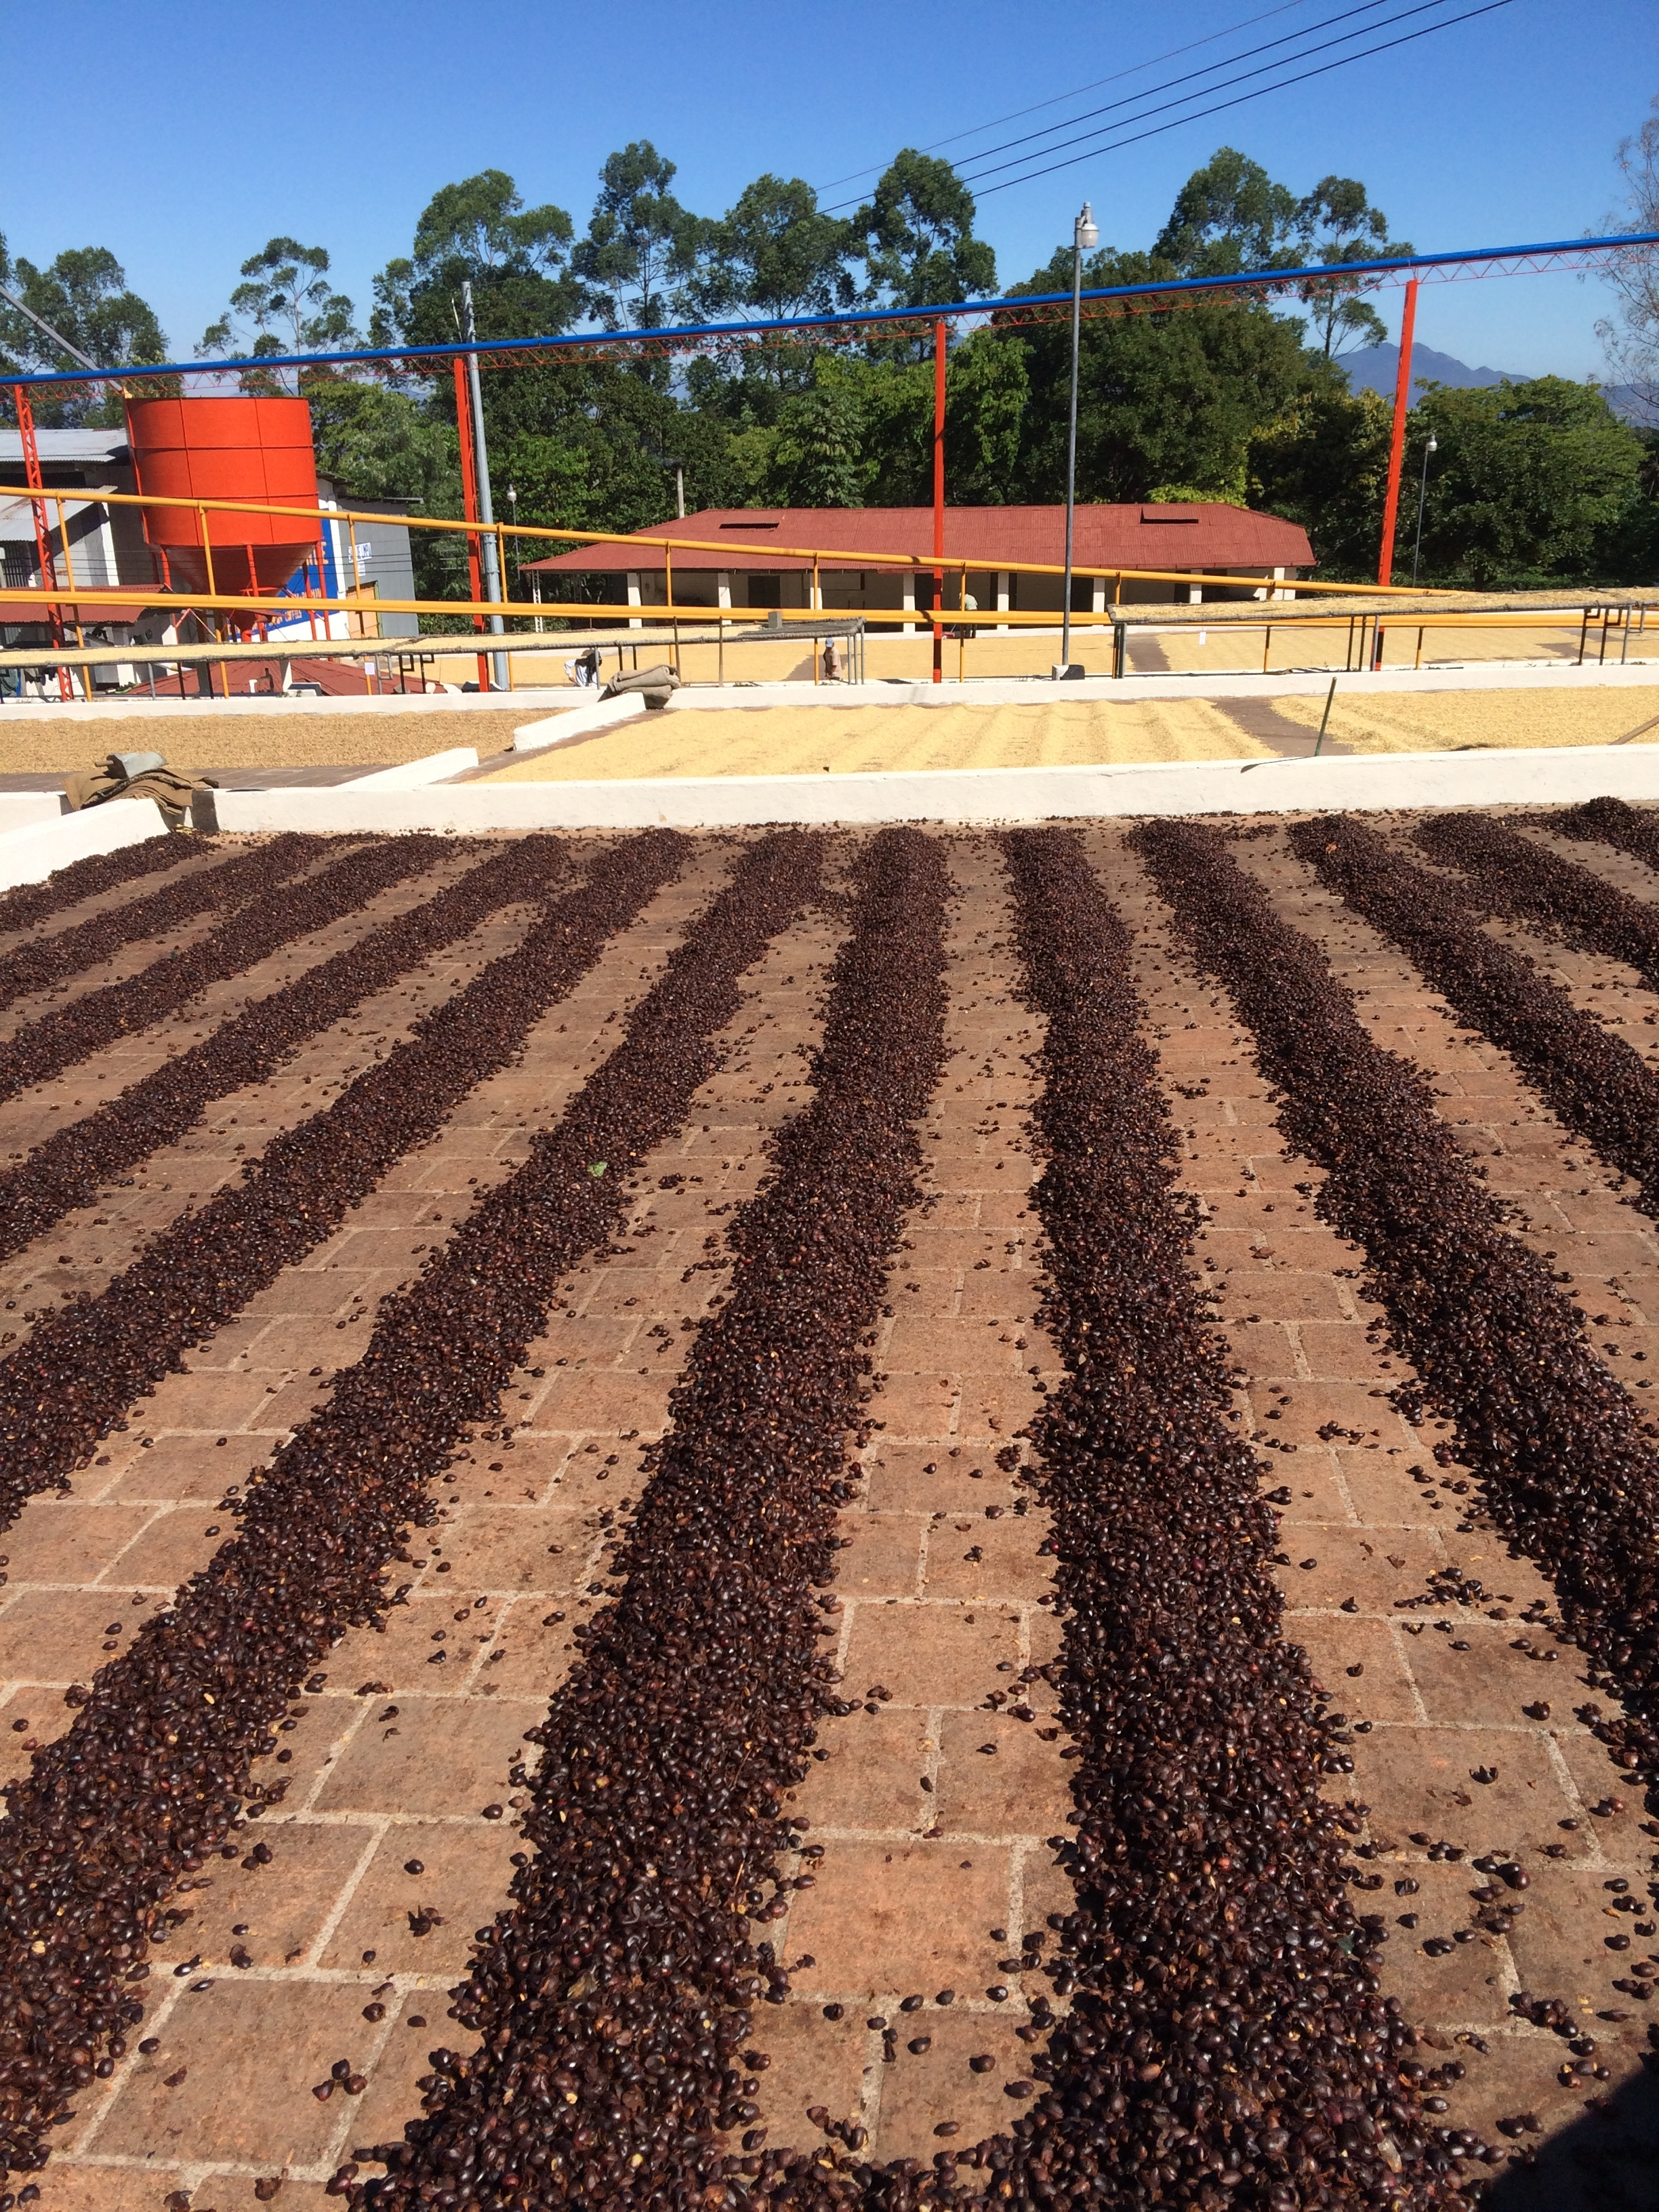 Cascara drying on a patio.